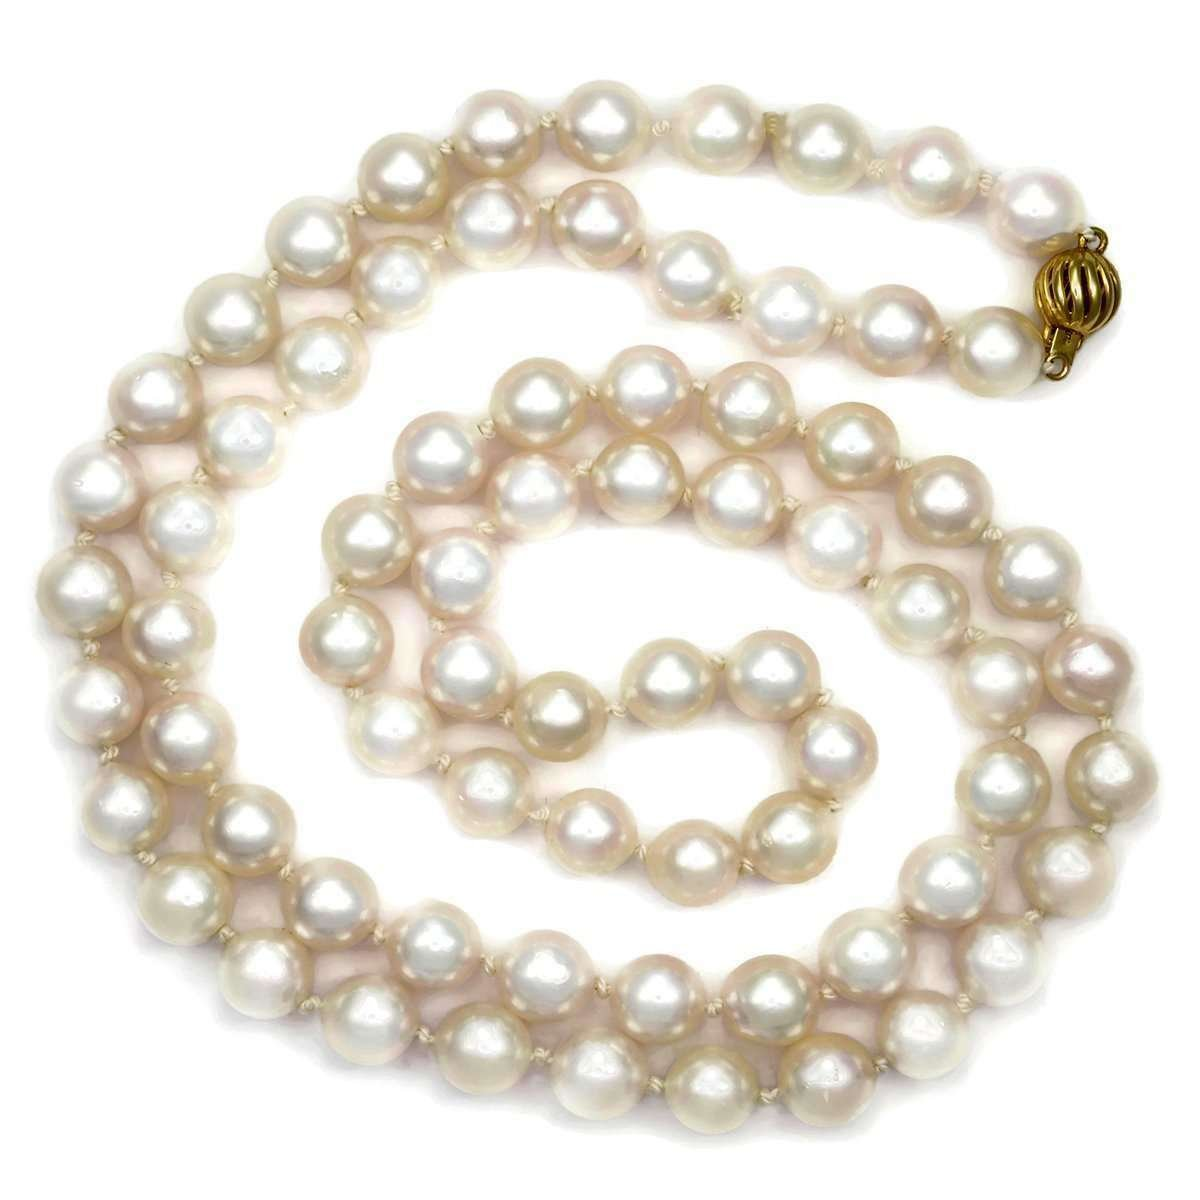 Akoya Pearl Necklace With 14kt Clasp - Donna Pizarro Designs